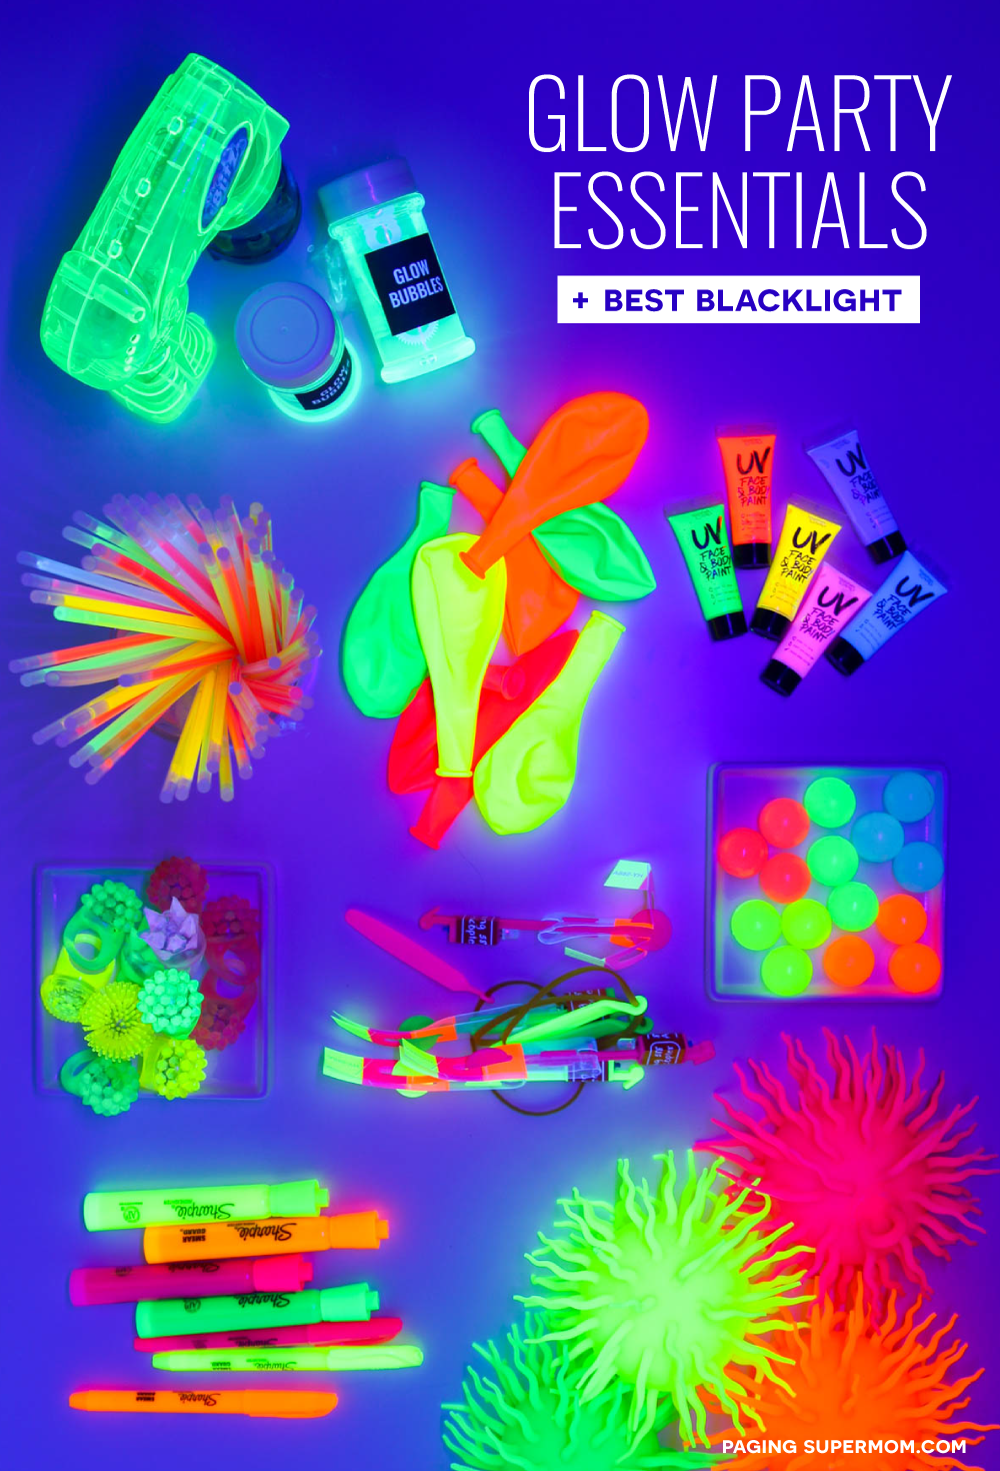 The ULTIMATE Blacklight Party Guide - glowing decor ideas, glowing food ideas, the BEST blacklight, and the coolest glow-in-the-dark party favors via @PagingSupermom